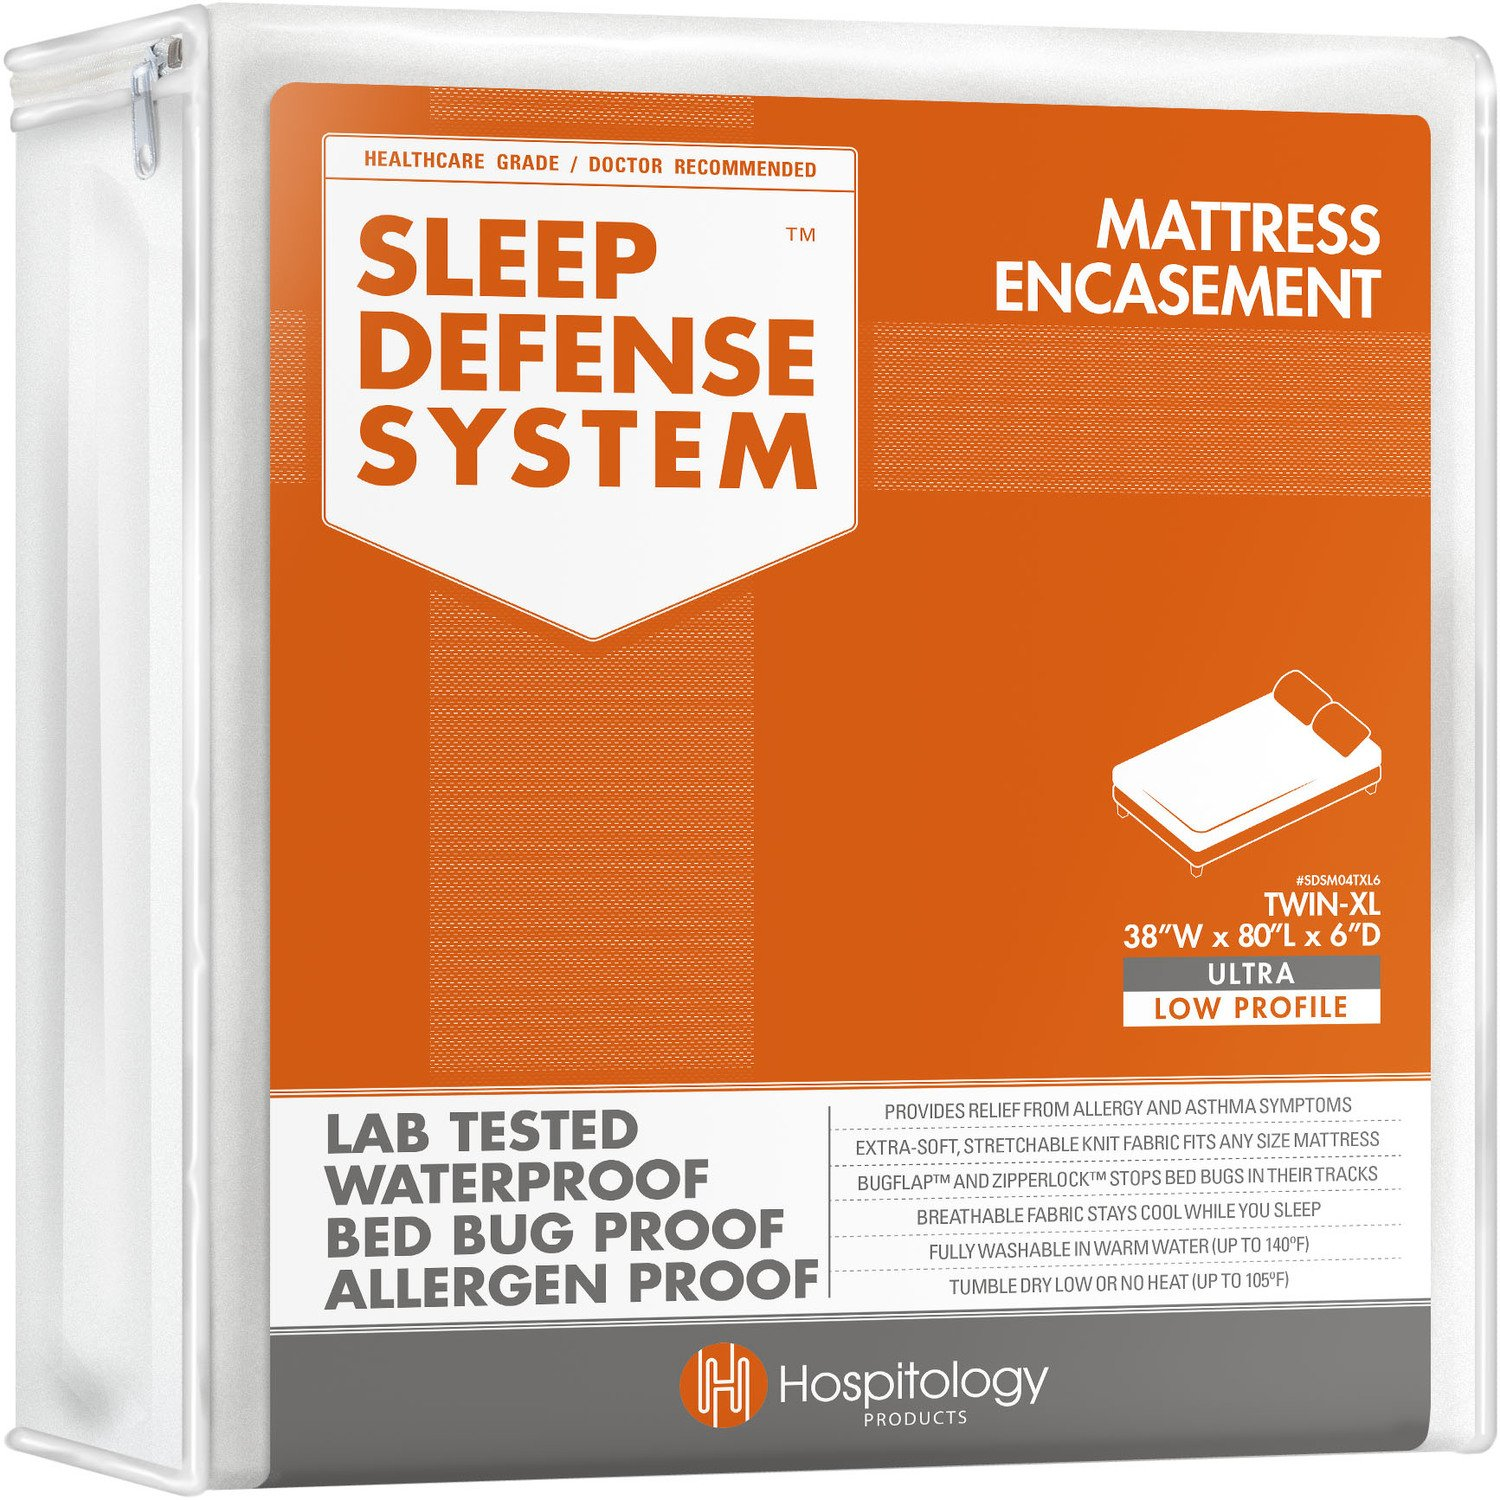 HOSPITOLOGY PRODUCTS Sleep Defense System - Zippered Mattress Encasement - Twin XL - Hypoallergenic - Waterproof - Bed Bug & Dust Mite Proof - Stretchable - Ultra Low Profile 6'' Depth - 38'' W x 80'' L